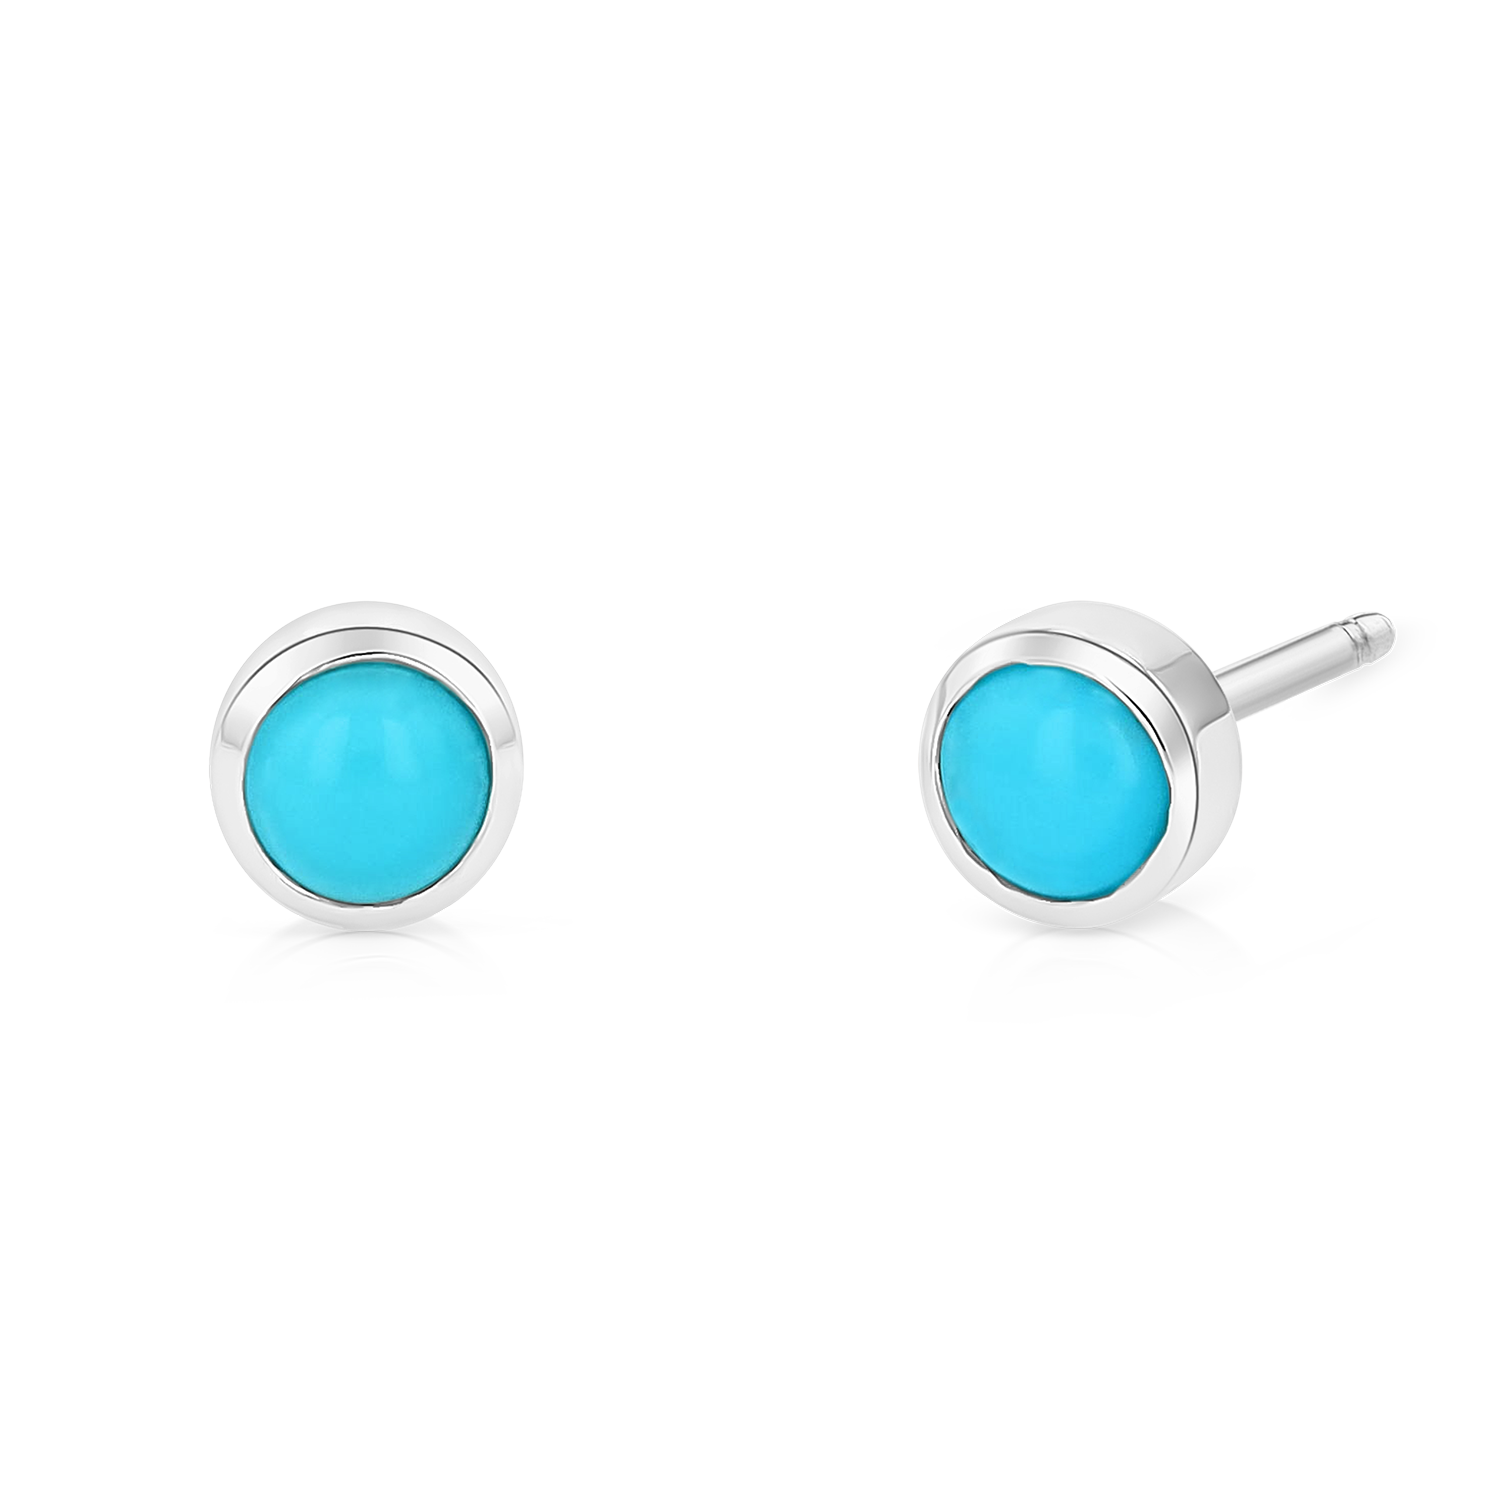 Turquoise Solitaire Stud Earrings